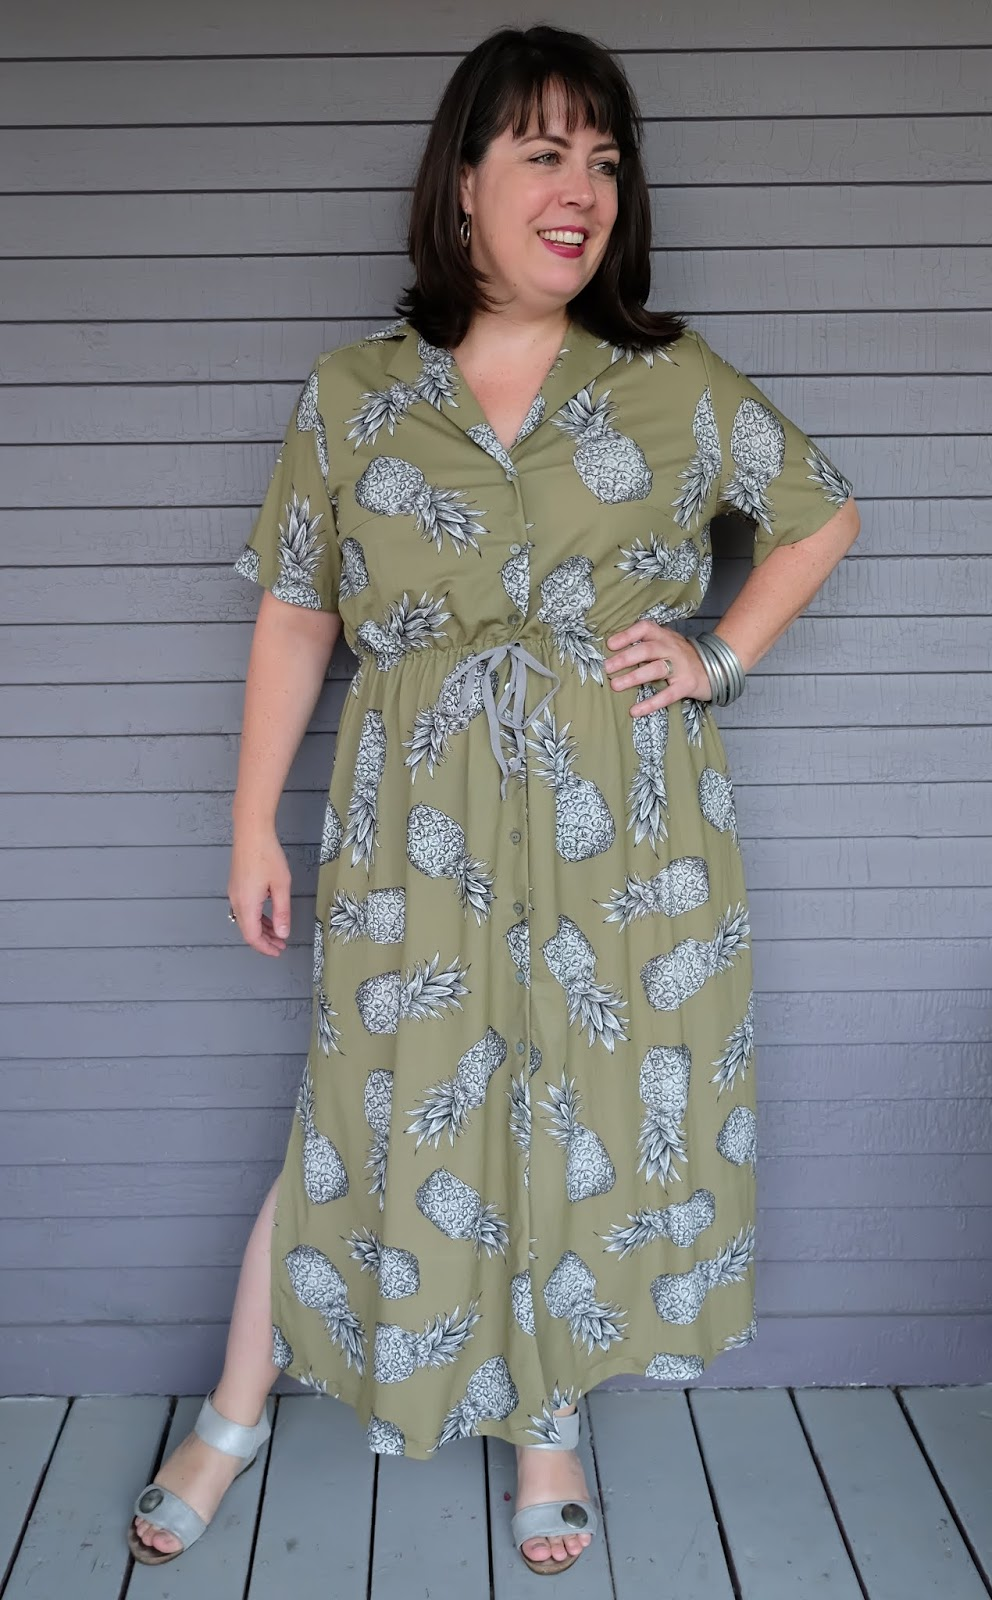 f35dd376abe This is the Named Reeta Midi Shirtdress, which I have been meaning to make  for a while now after admiring so many others in the sewing community (see:  Katie ...